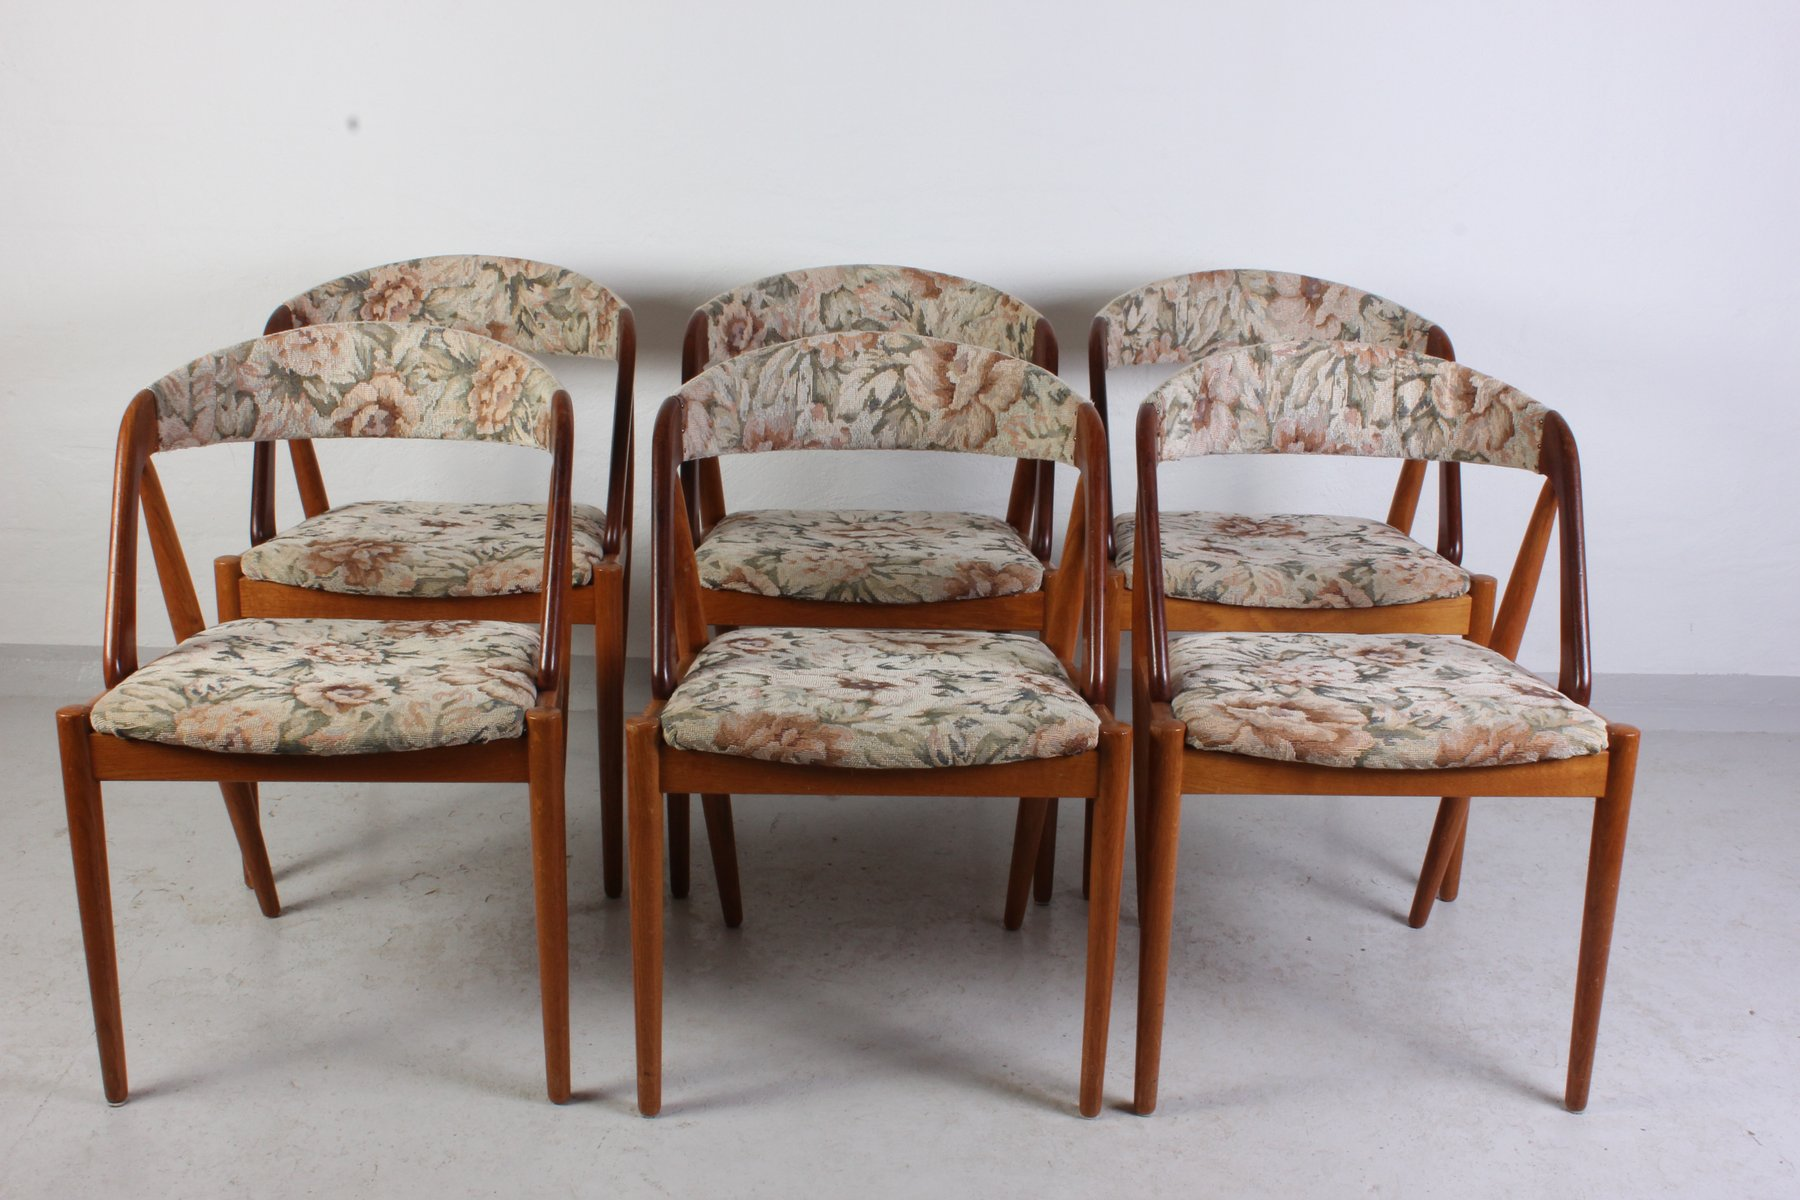 Mid Century Dining Chairs by Kai Kristiansen Set of 6 for sale at